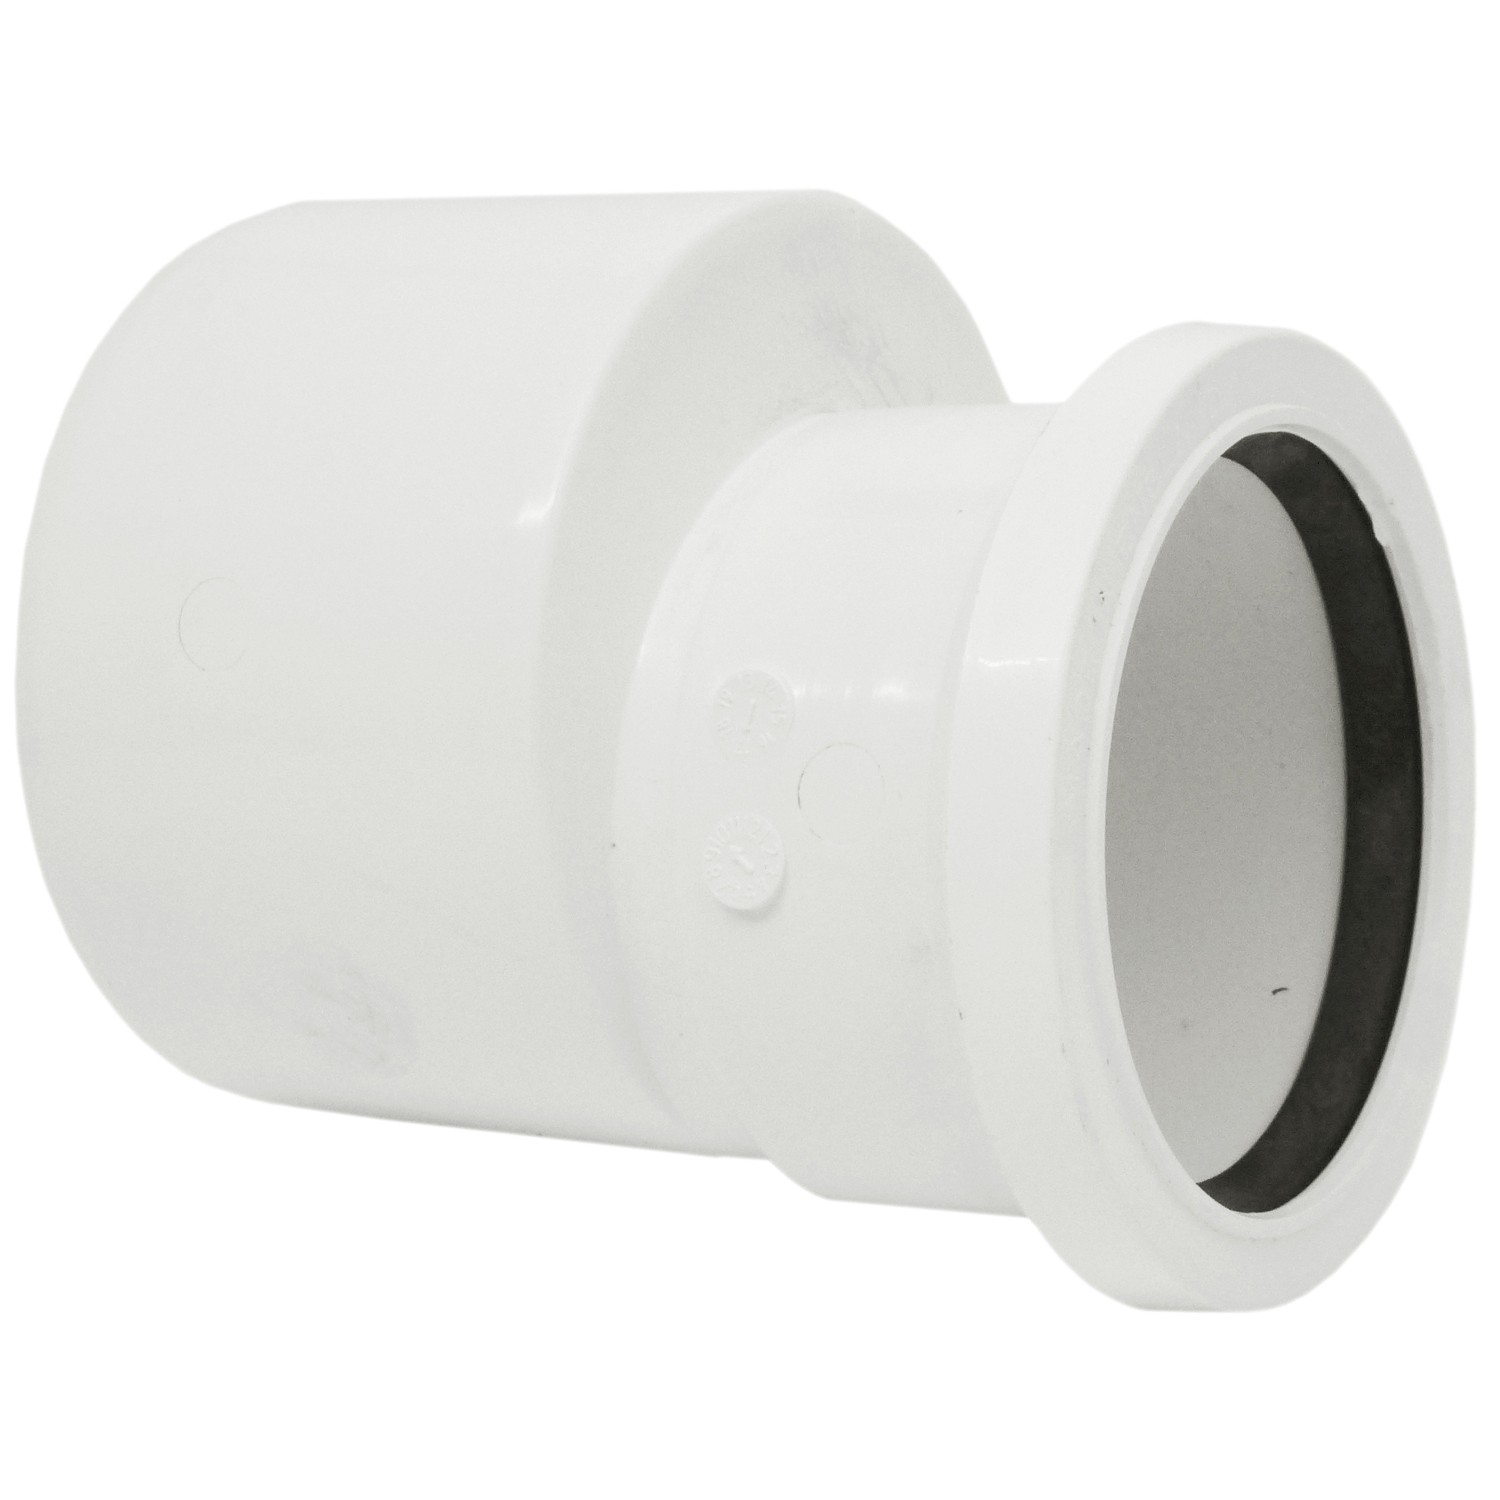 Polypipe 110mm To 82mm Soil Reducer - White